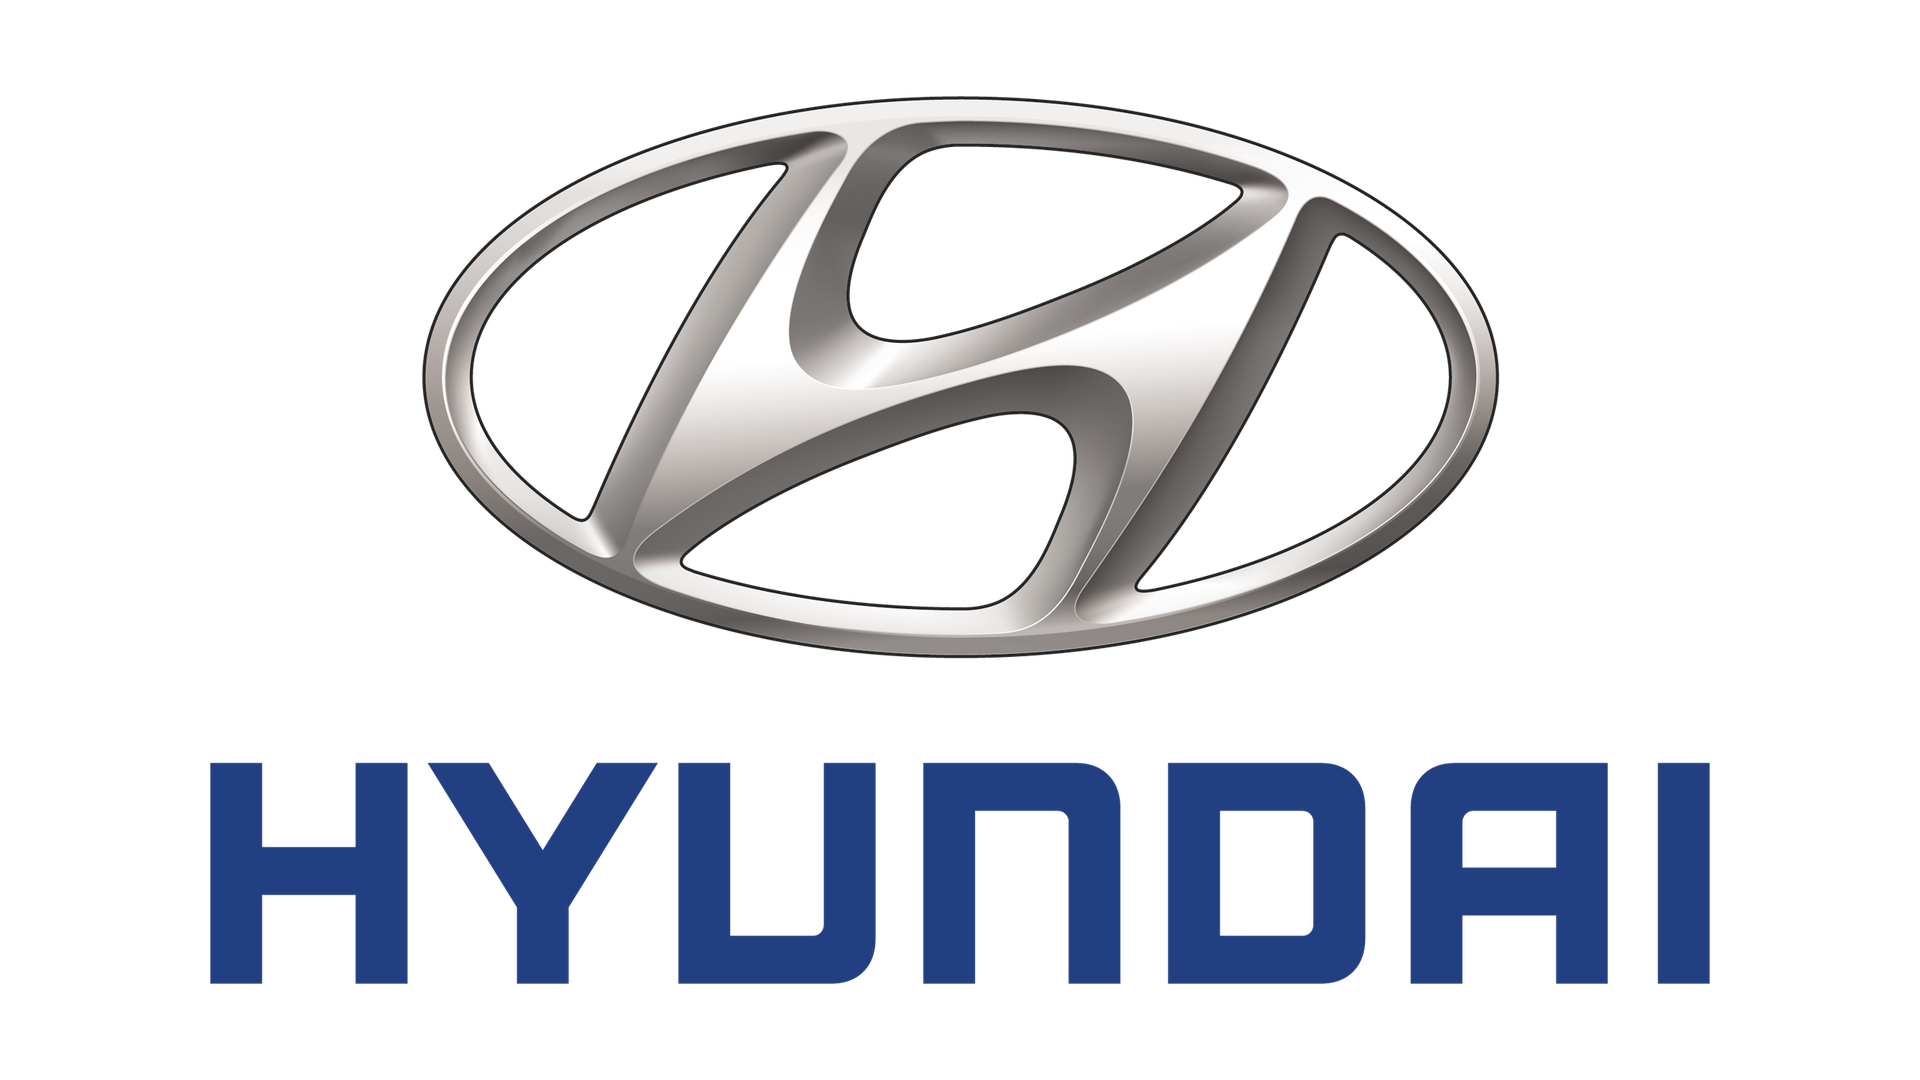 66 Hyundai Pdf Manuals Download For Free Ar Manual Wiring 2008 Santa Fe Engine Diagram Fault Codes